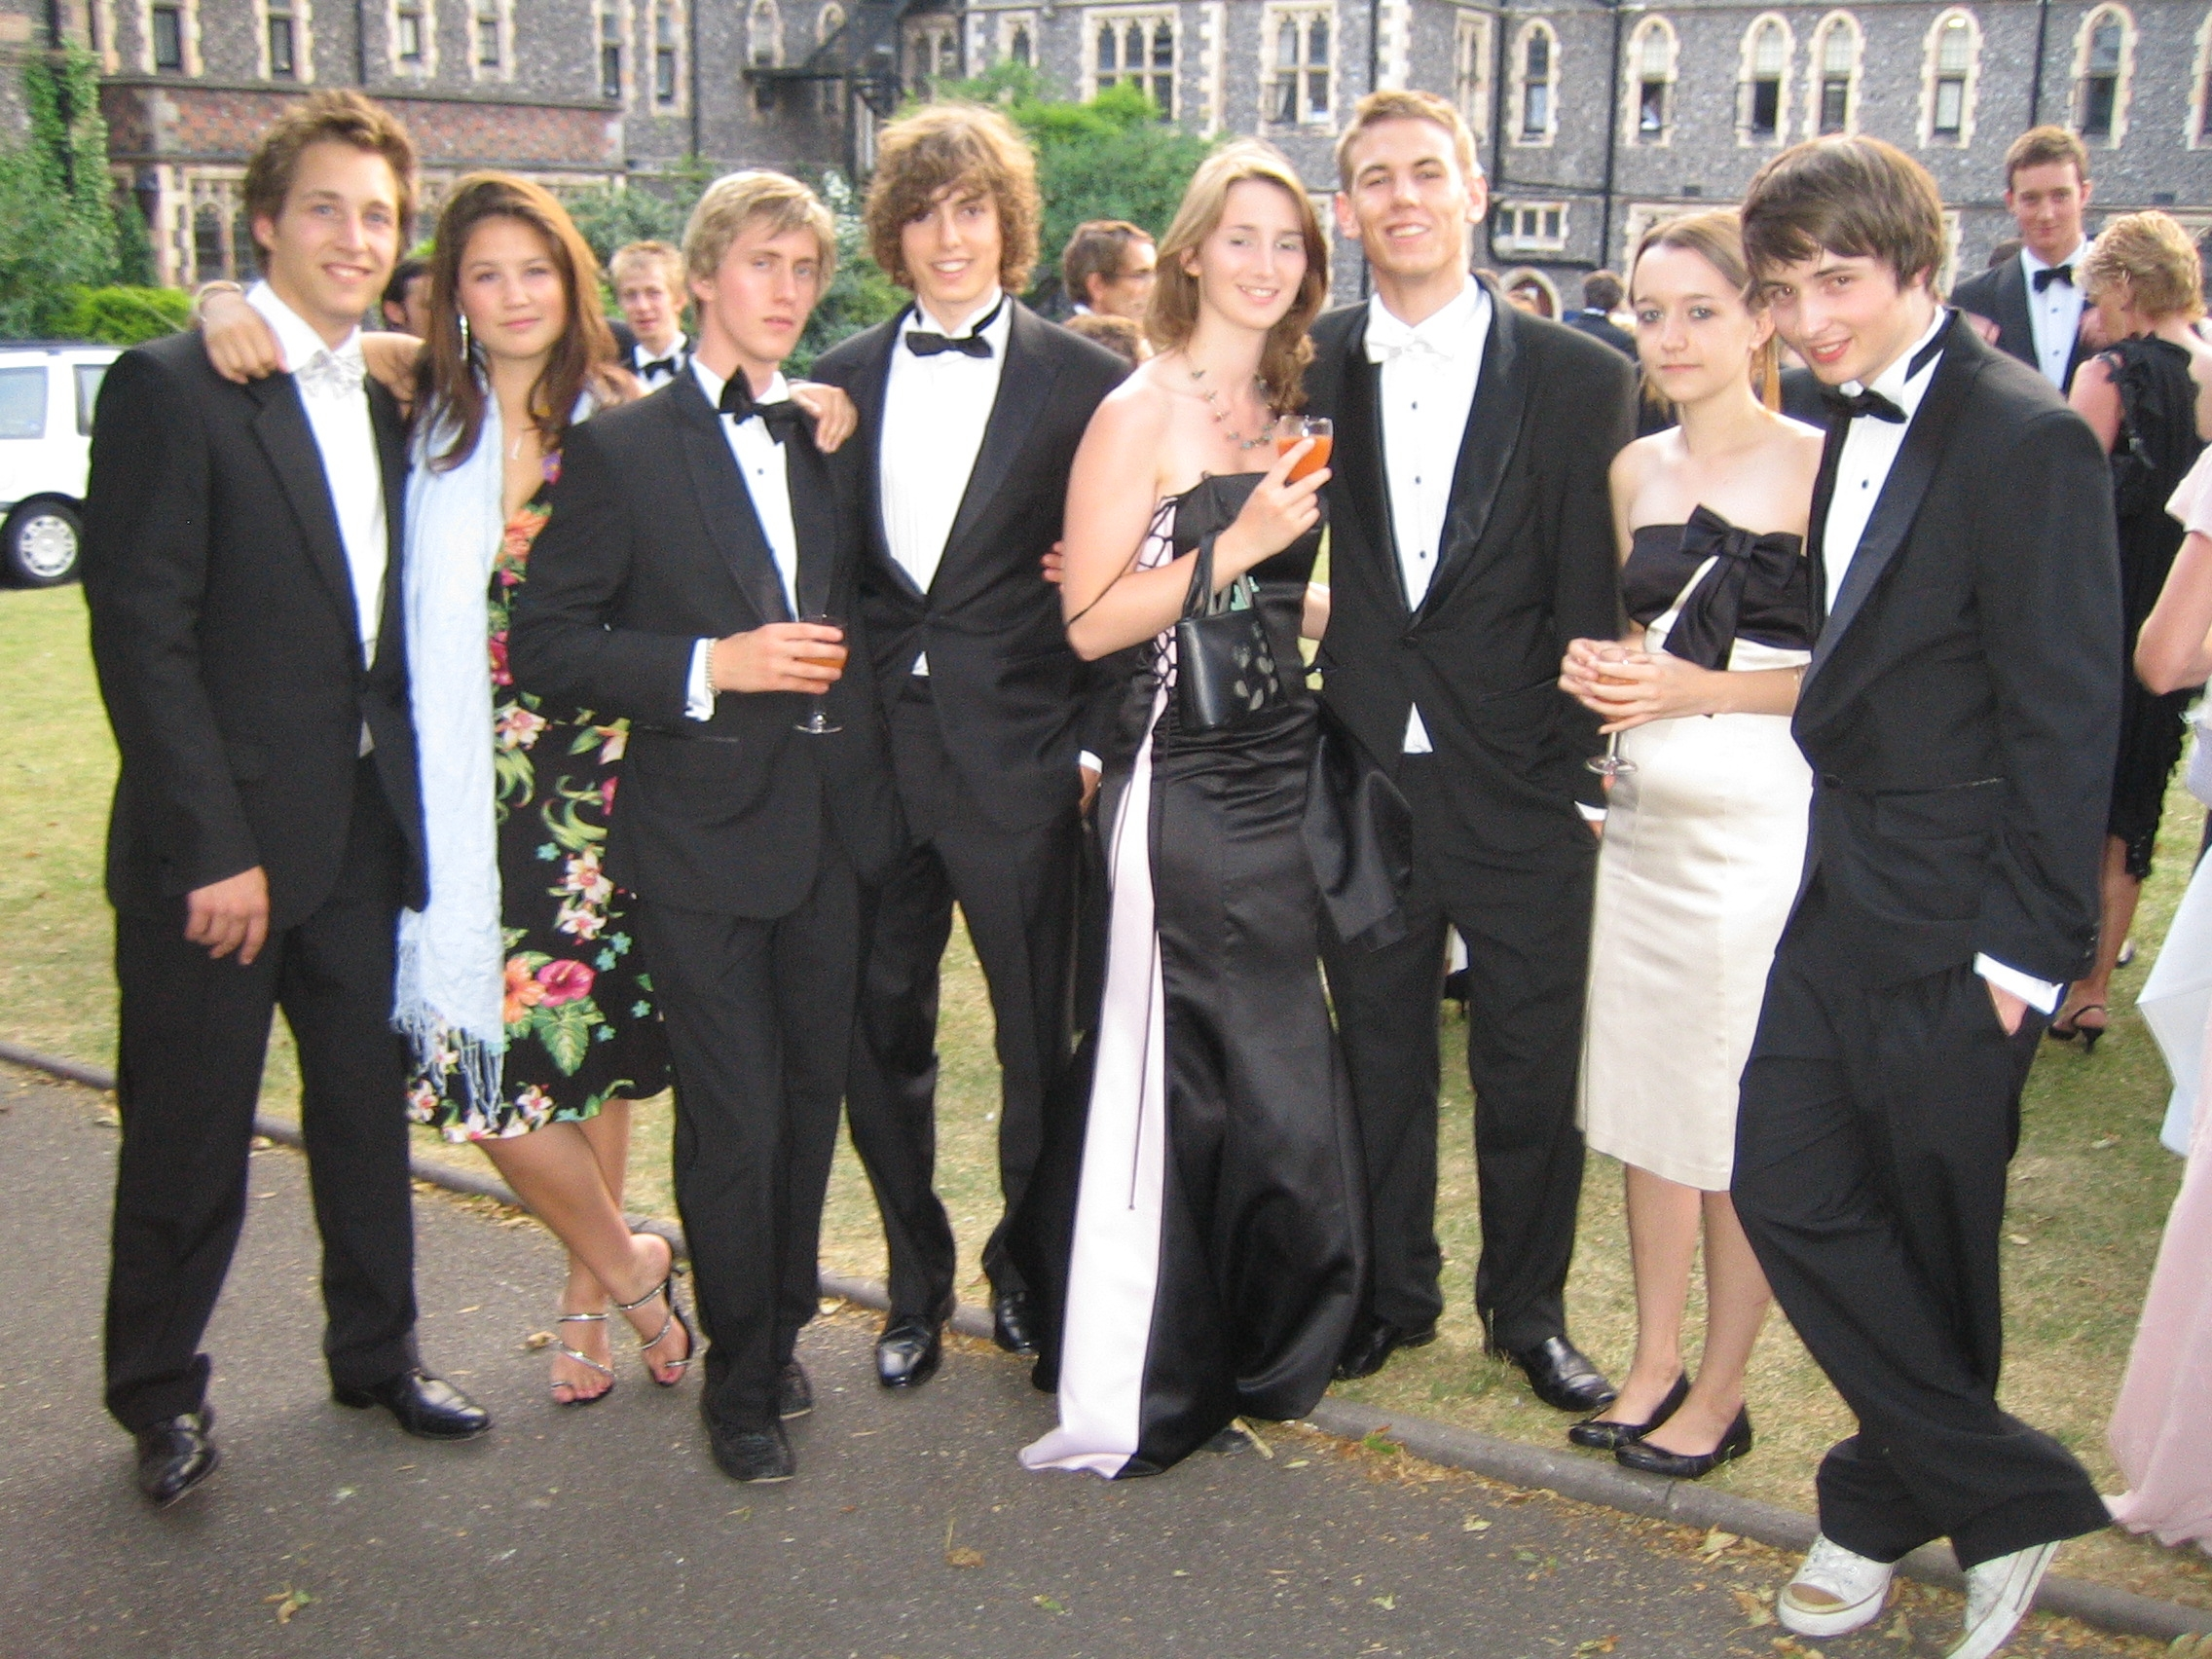 Adam Johnson (L. 2001-06), Vicky Raymond (W.), Edward Bamford (R. 2001-06), James Hacking (R. 2001-06), Charlotte Hutchinson (W. 2004-06), Daniel Smith (A. 2001-06), Sophie Gwynne and Alasdair Lampon-Monk (D. 2001-06)